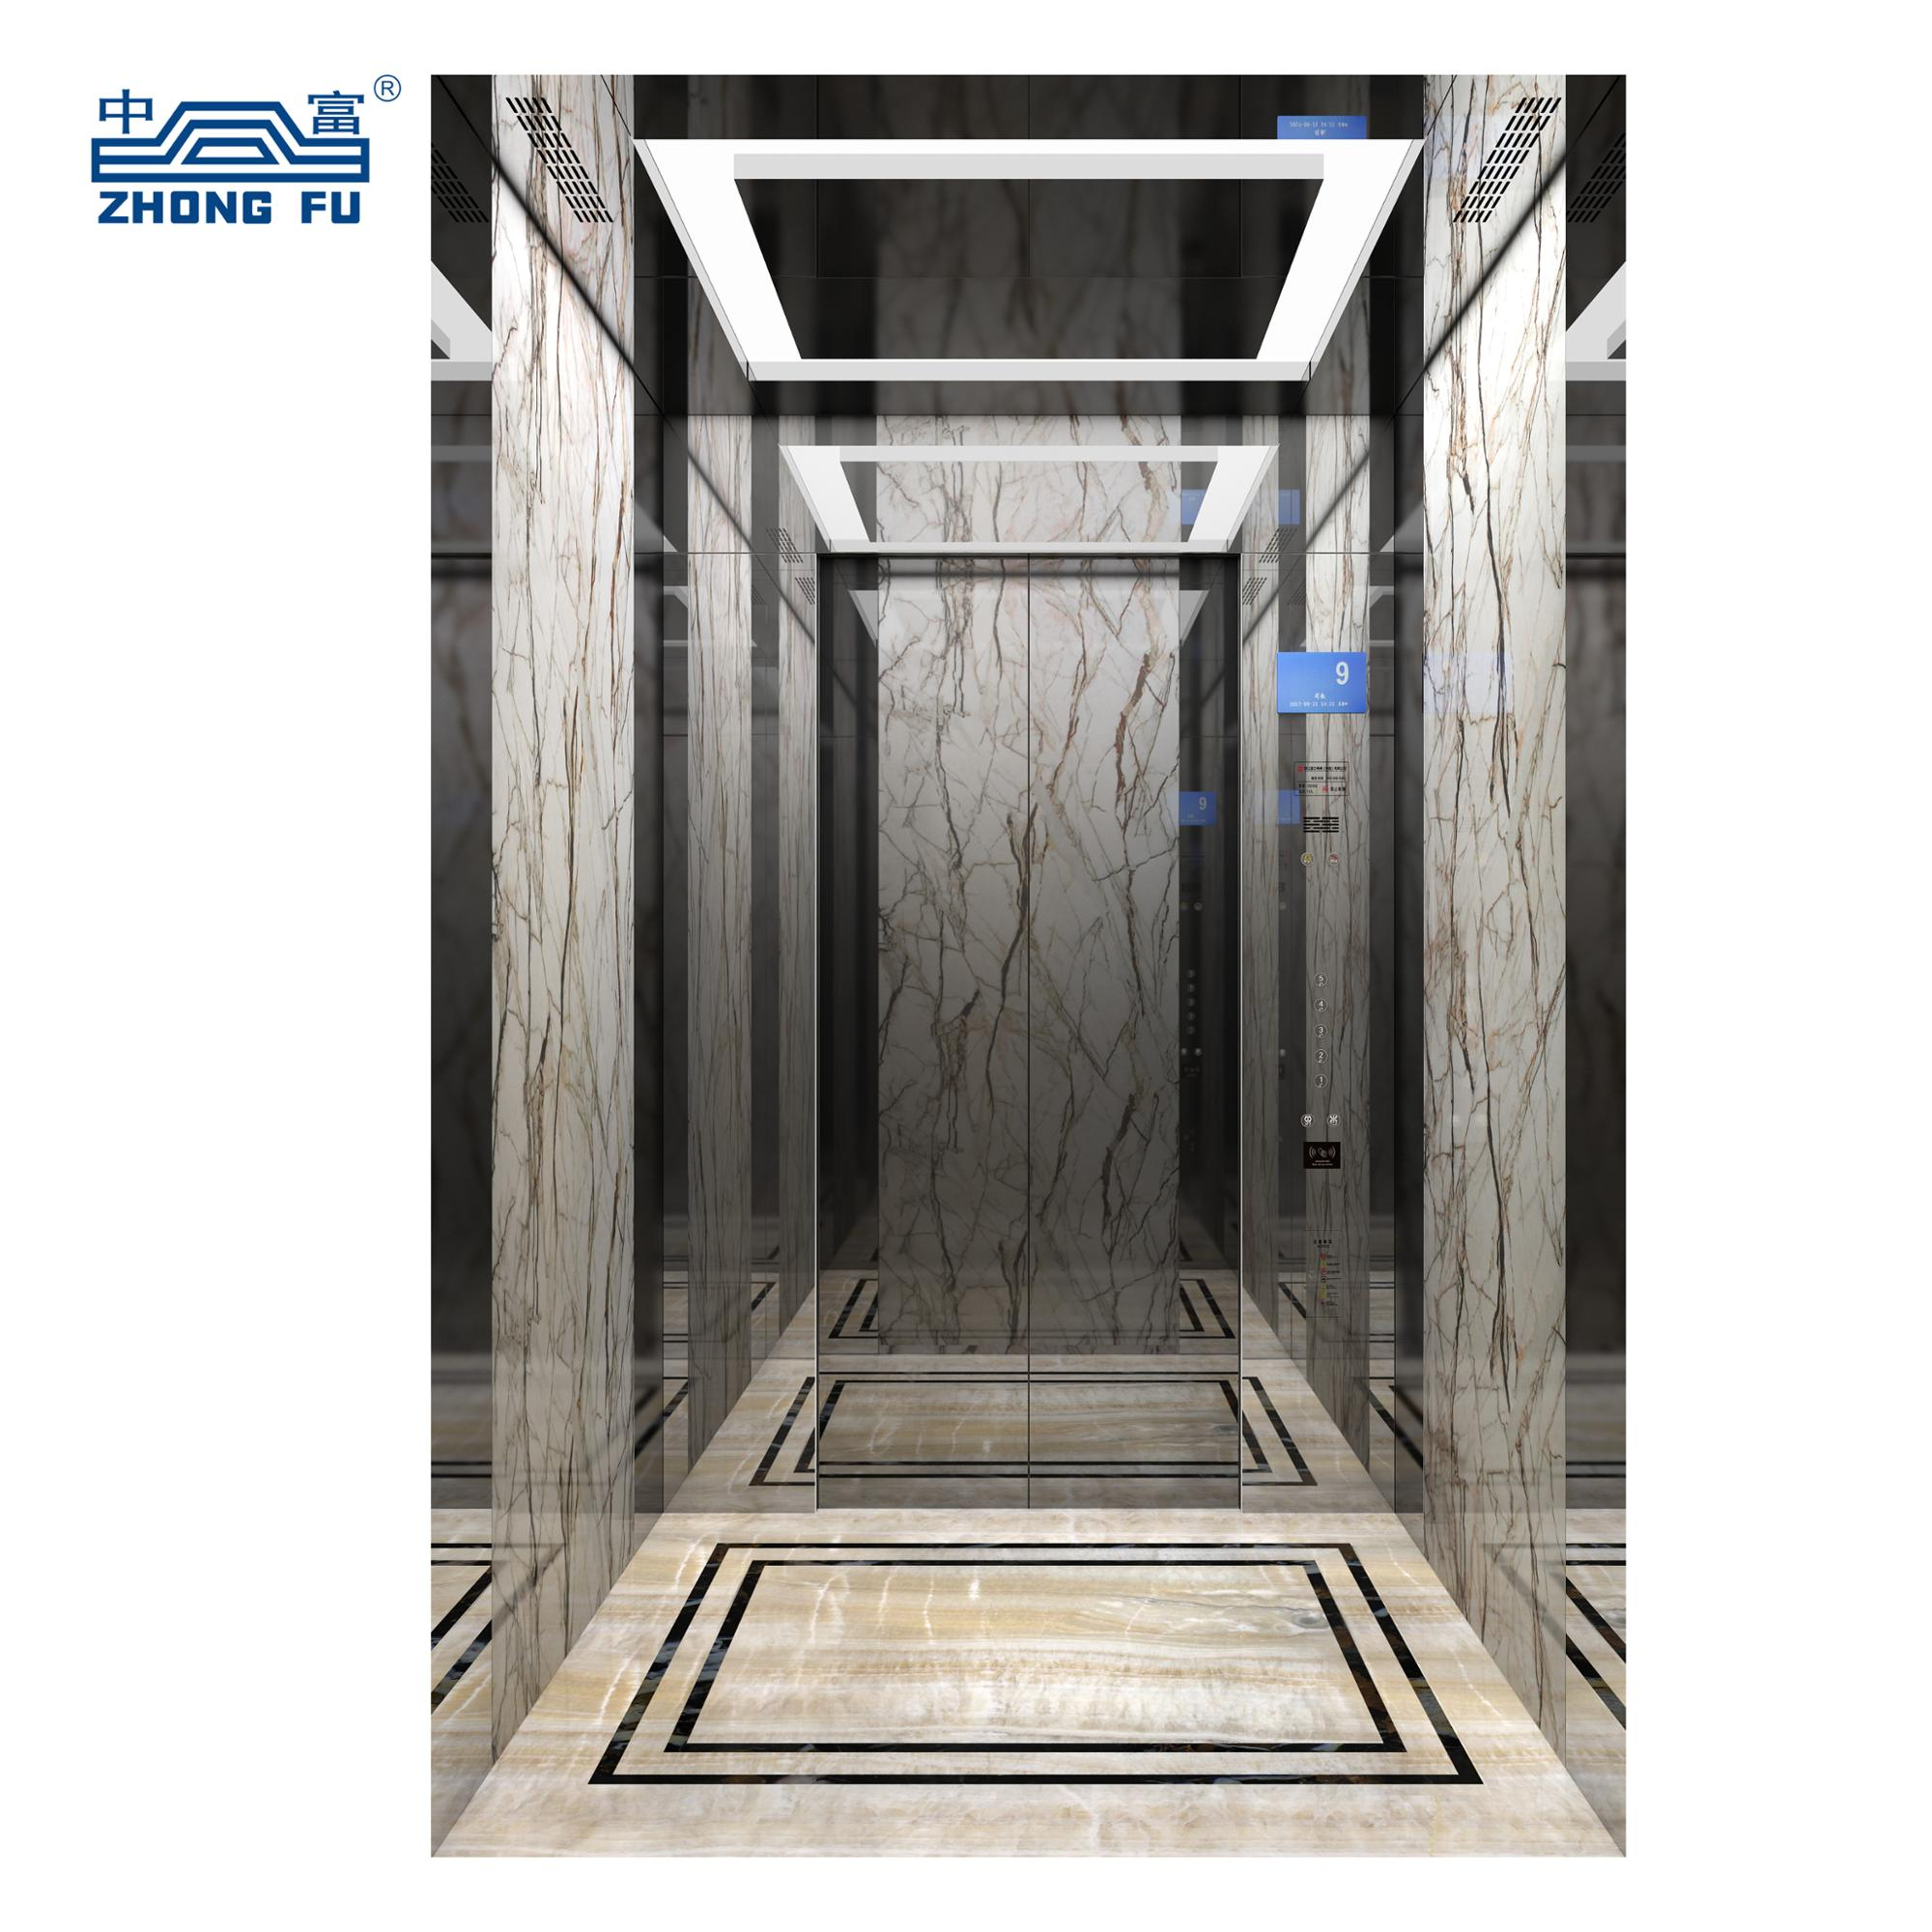 Low Price Commercial Used Lift Passenger Elevators For Sale - Buy Passenger  Elevator,Lifts And Elevators,Passenger Elevator For Sale Product on